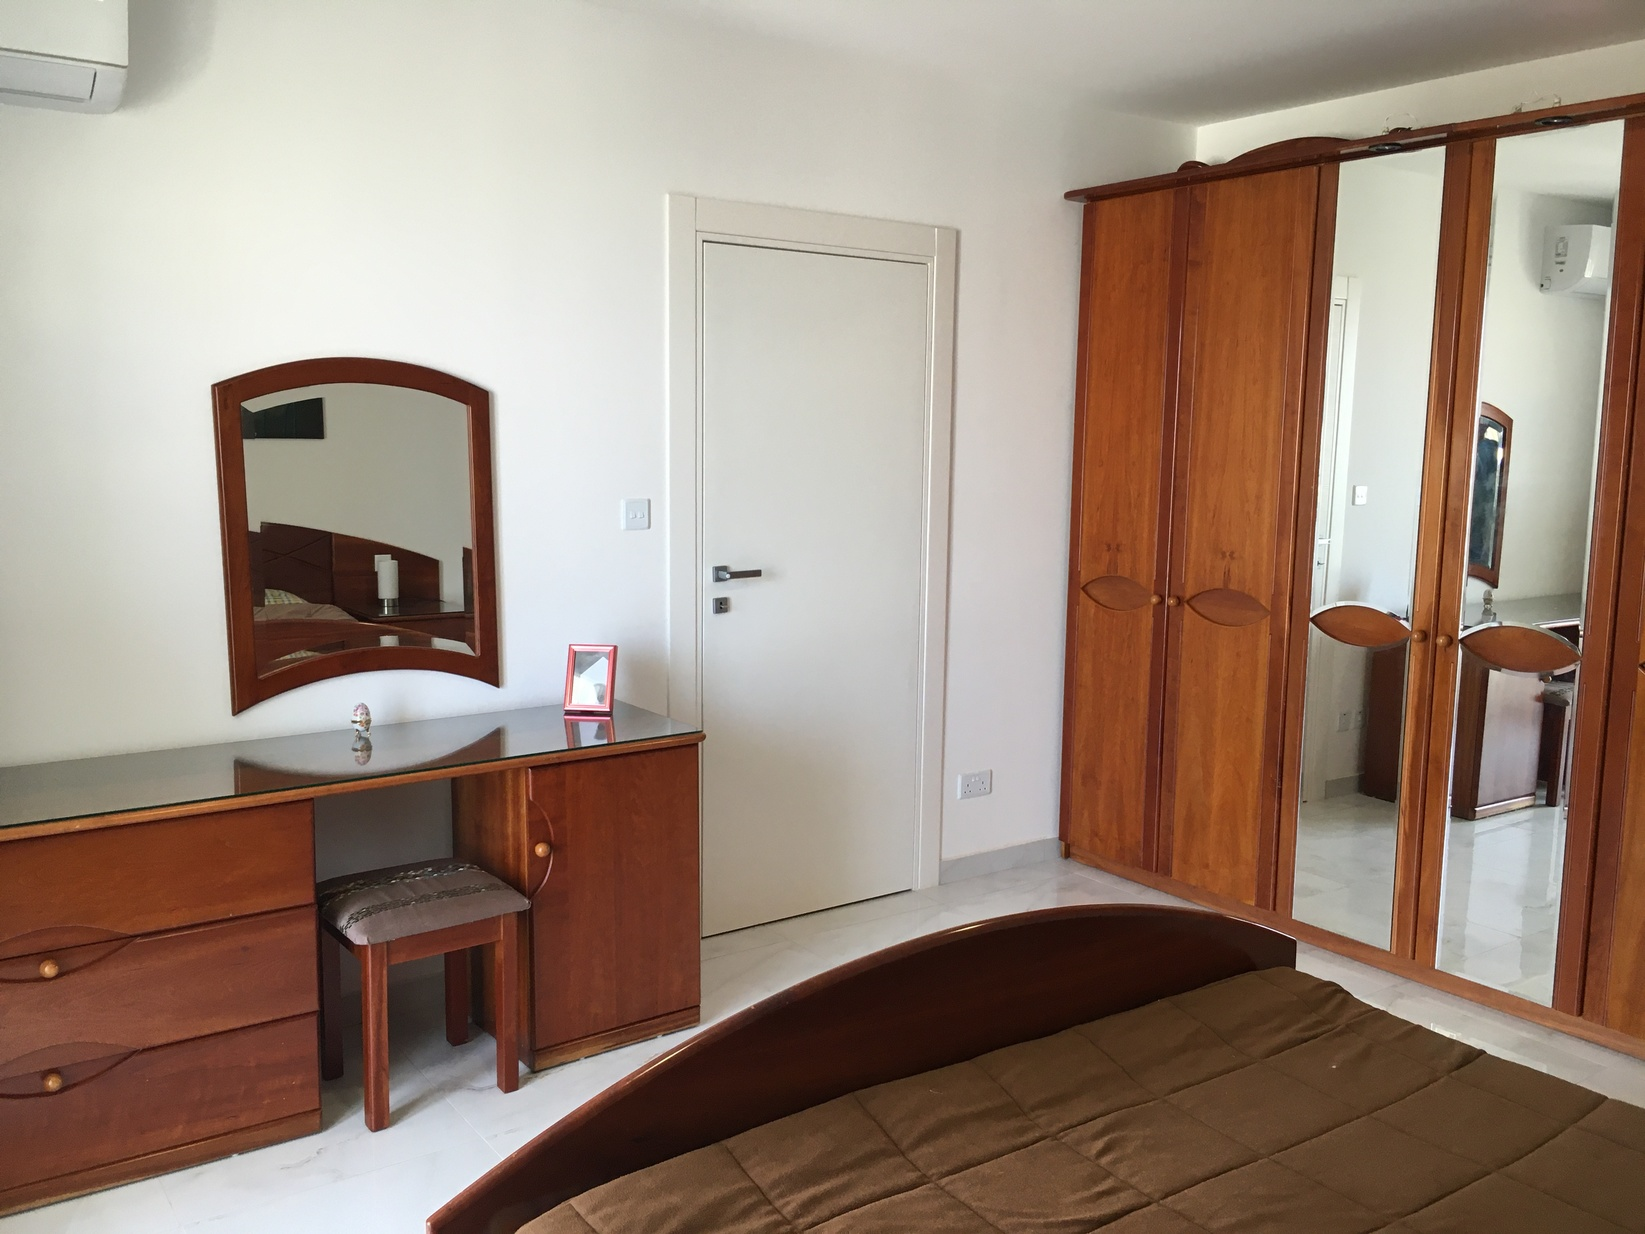 3 bed Apartment For Rent in Swieqi, Swieqi - thumb 18